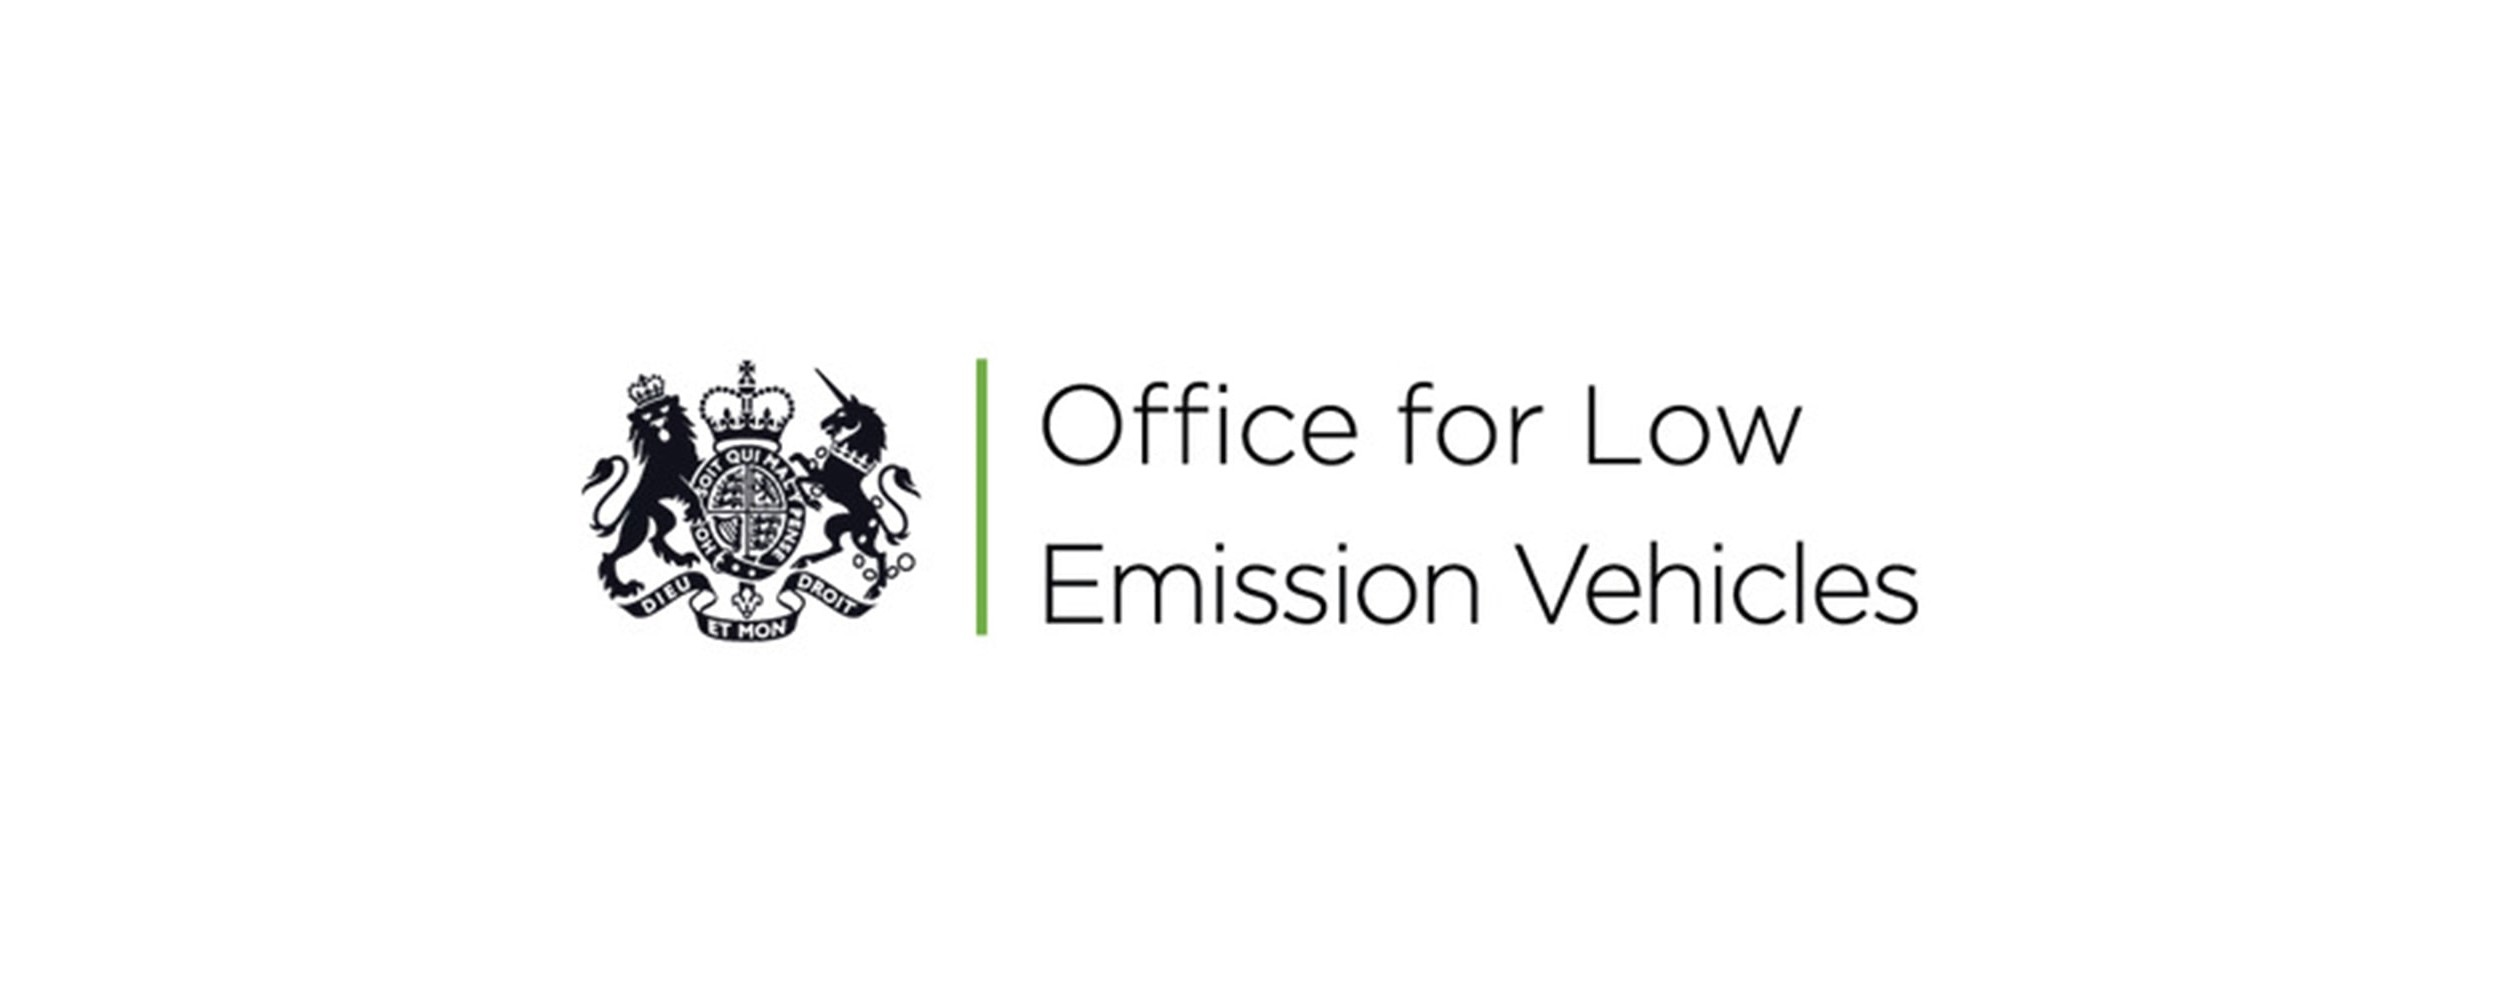 office-for-low-emmission-vehicles